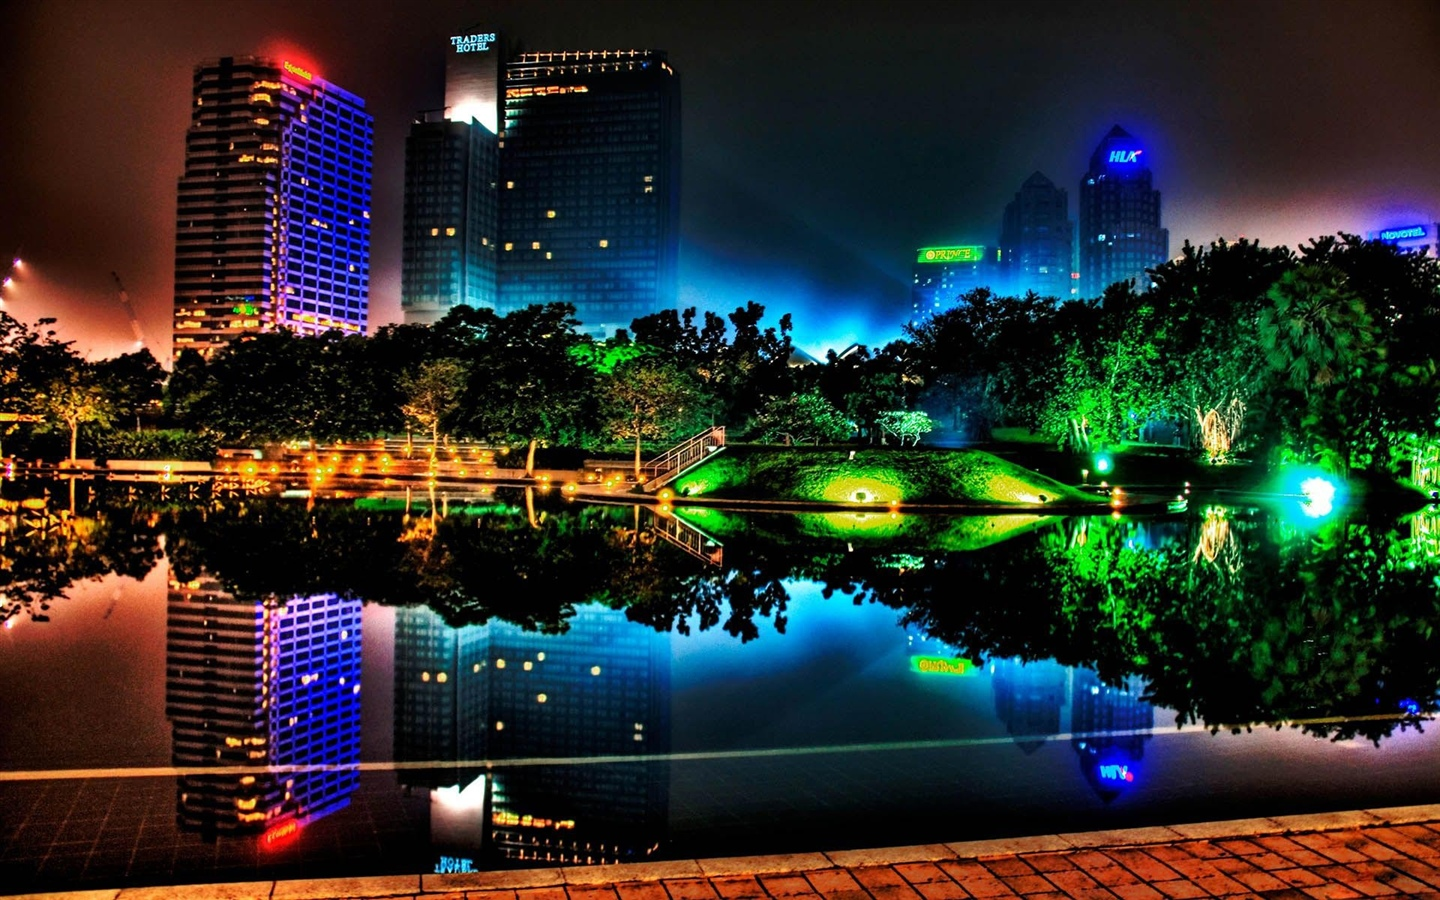 Beautiful night city, buildings, pond, lights, trees, park 1440x900 wallpaper